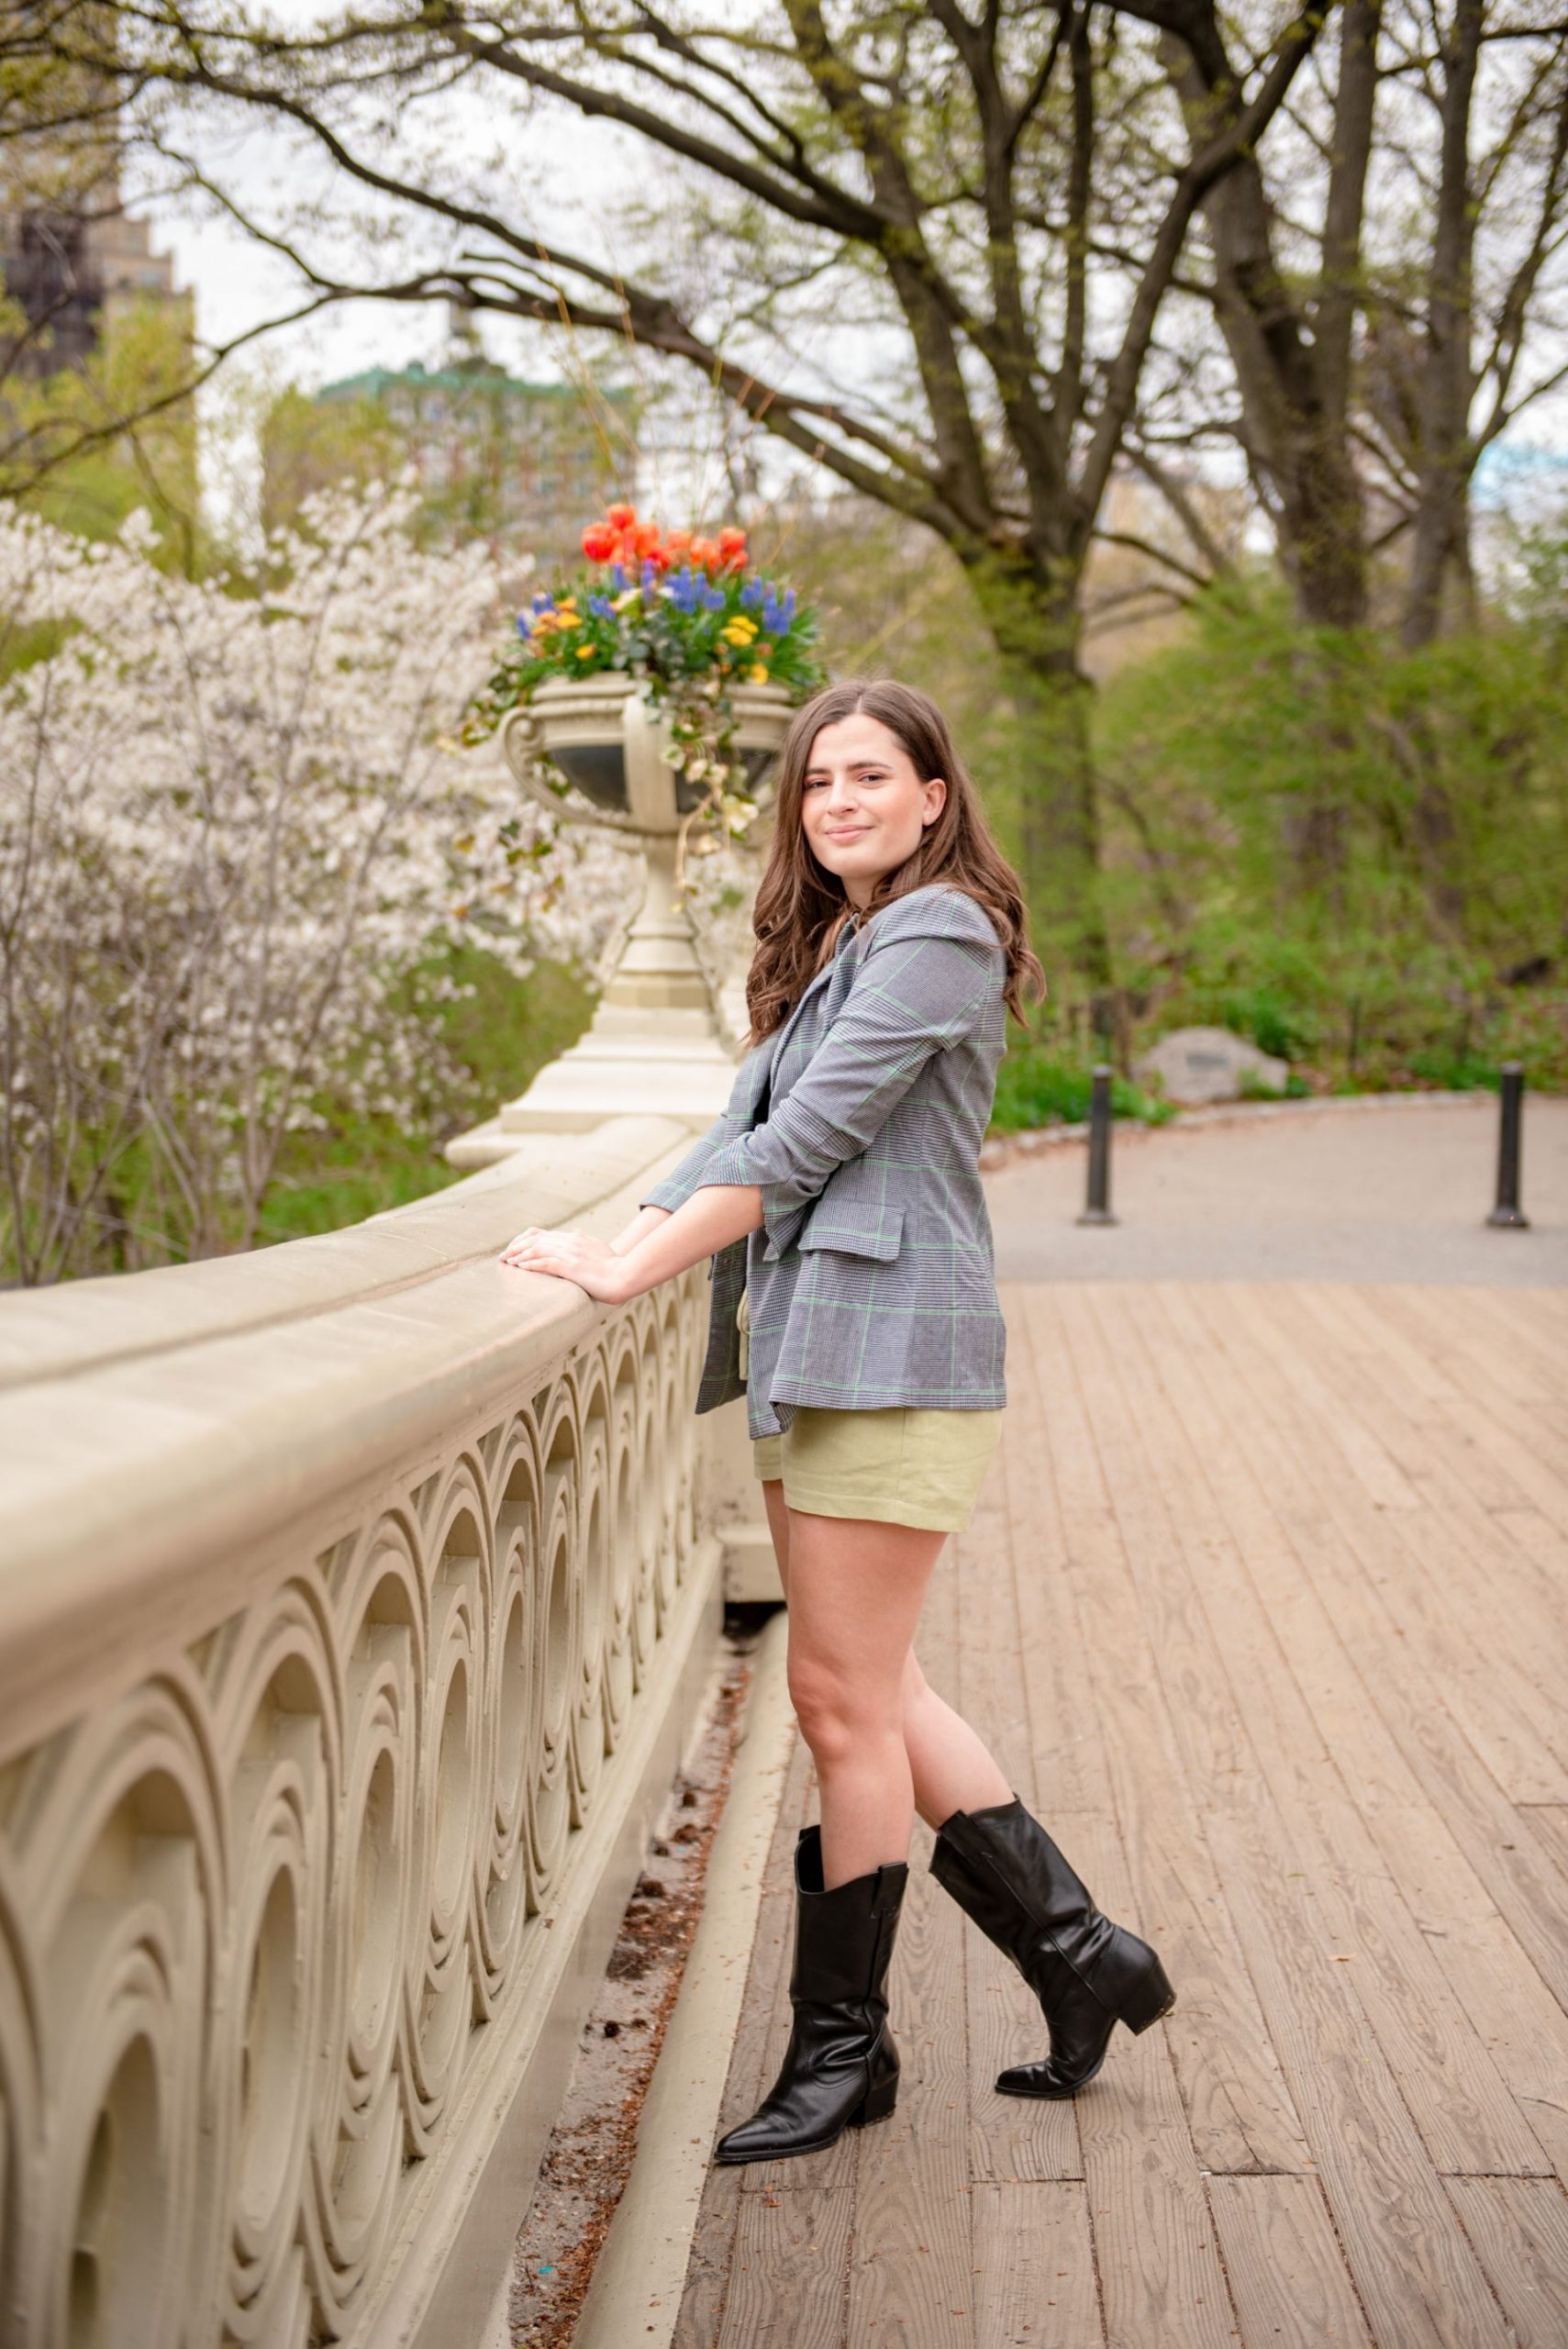 Bow Bridge photoshoot location in Central Park